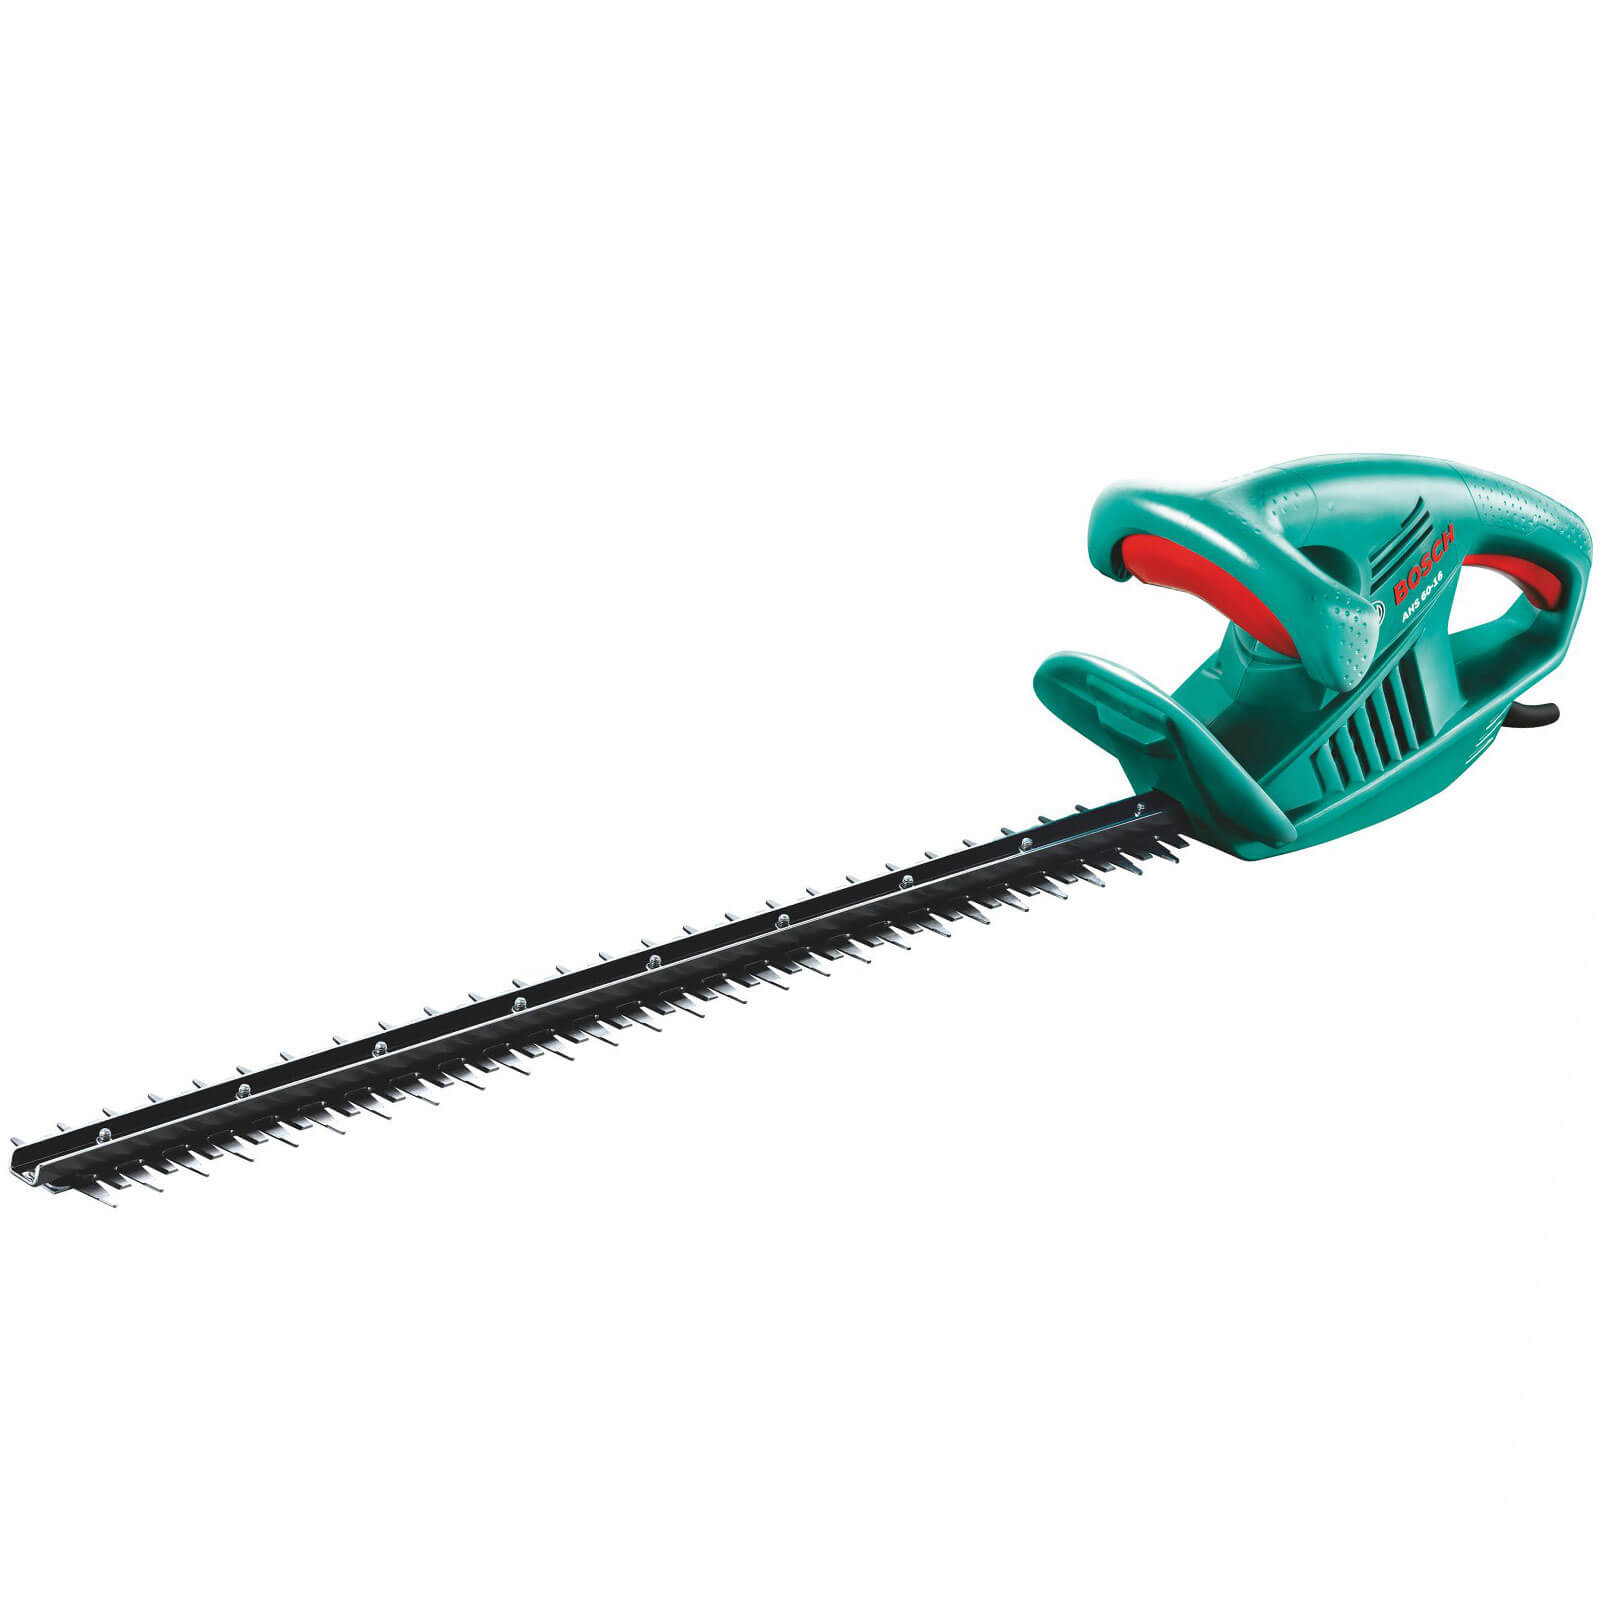 Bosch AHS 60-16 Electric Hedge Trimmer 600mm Blade Length 450w 240v